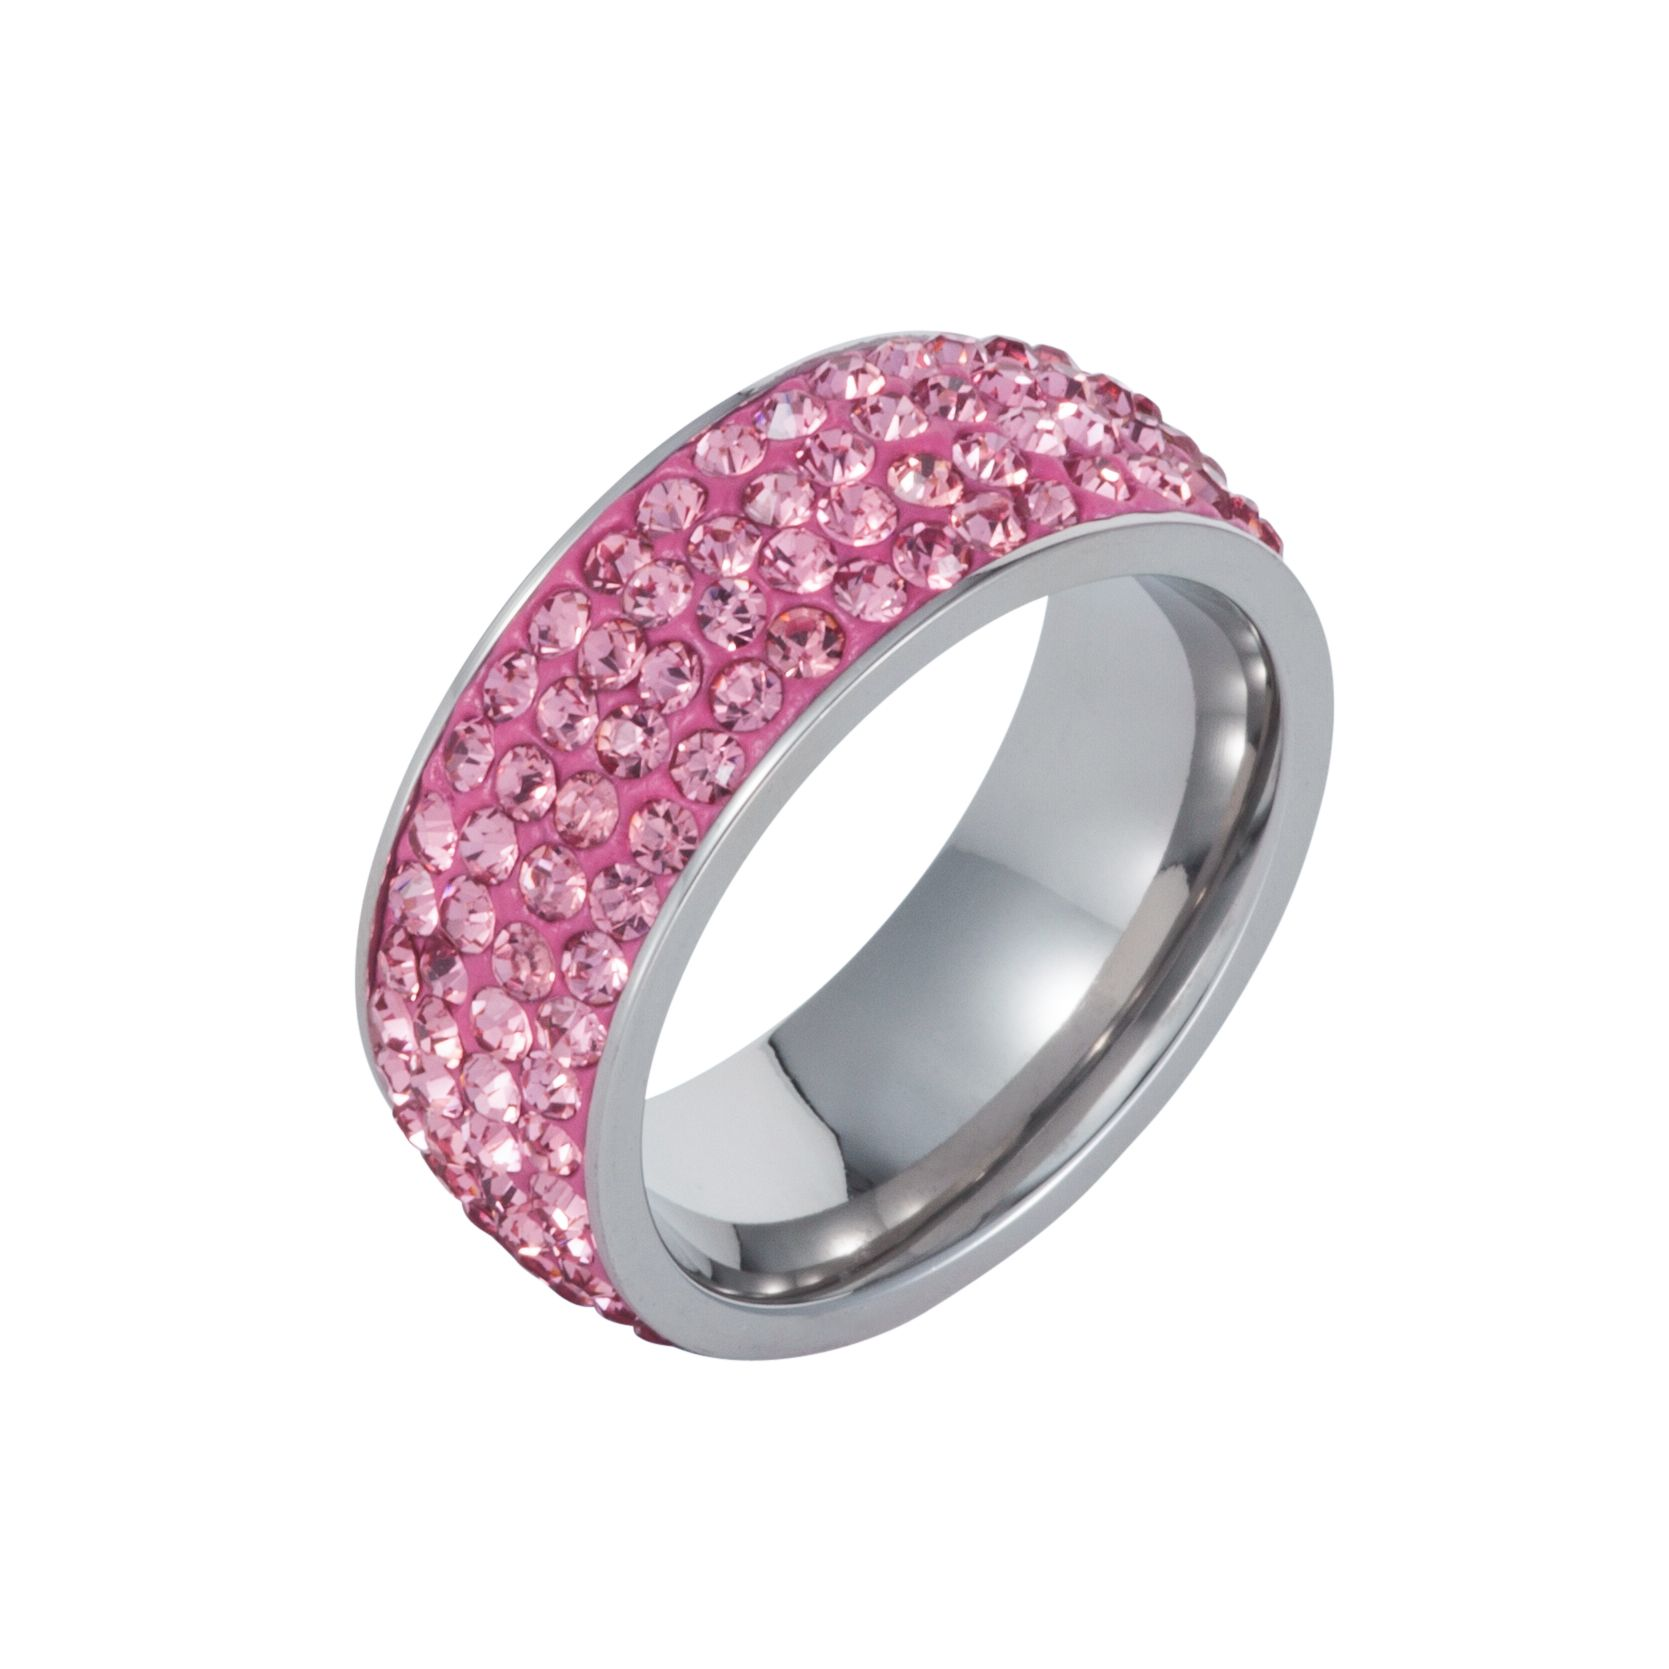 Stainless steel cubic zirconia pink ring